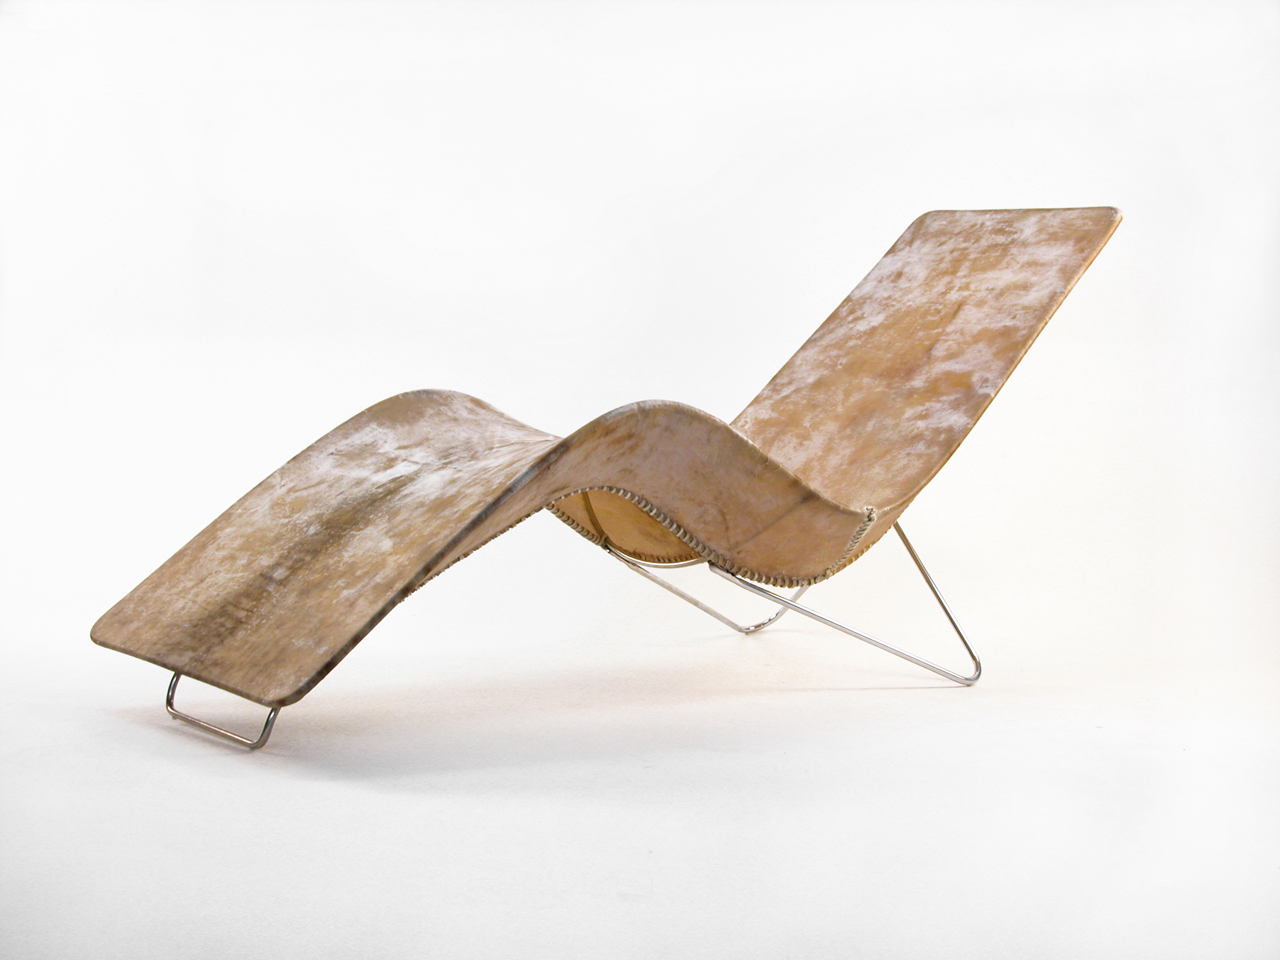 Chaise Longue Apero / Francisco Gómez Paz, © Francisco Gómez Paz